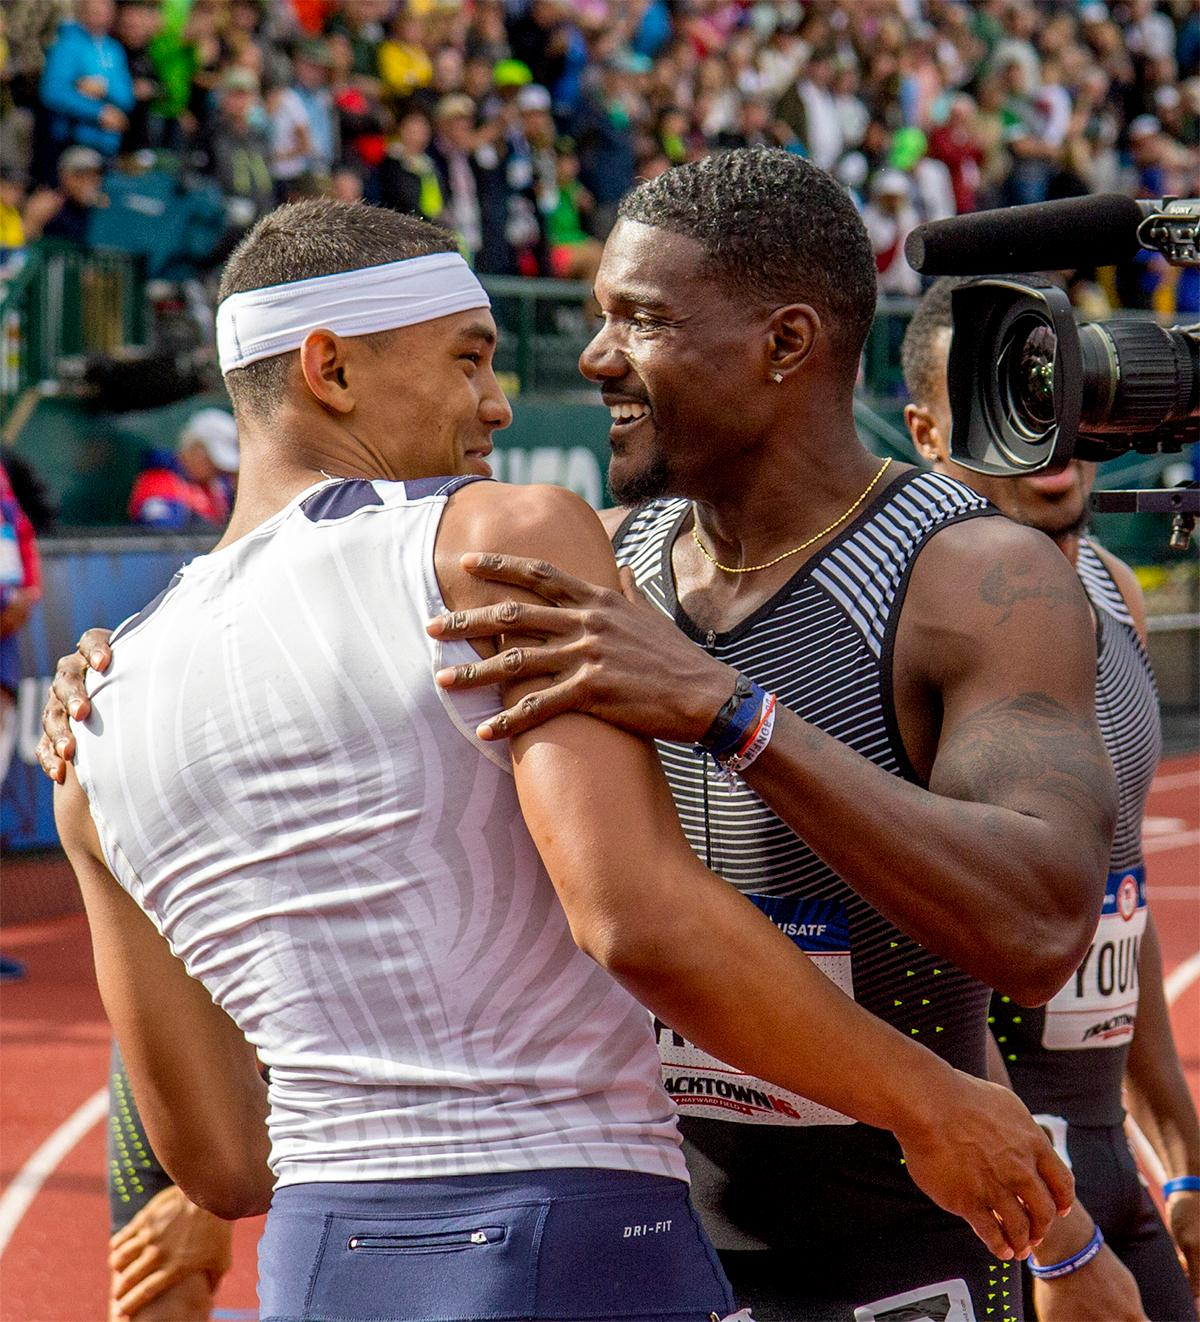 Nike's LaShawn Merritt and high school athlete Michael Norman congratulate each other on winning each of their heats in the 200 meter semi-finals and moving on to the finals. Photo by August Frank, Oregon News Lab